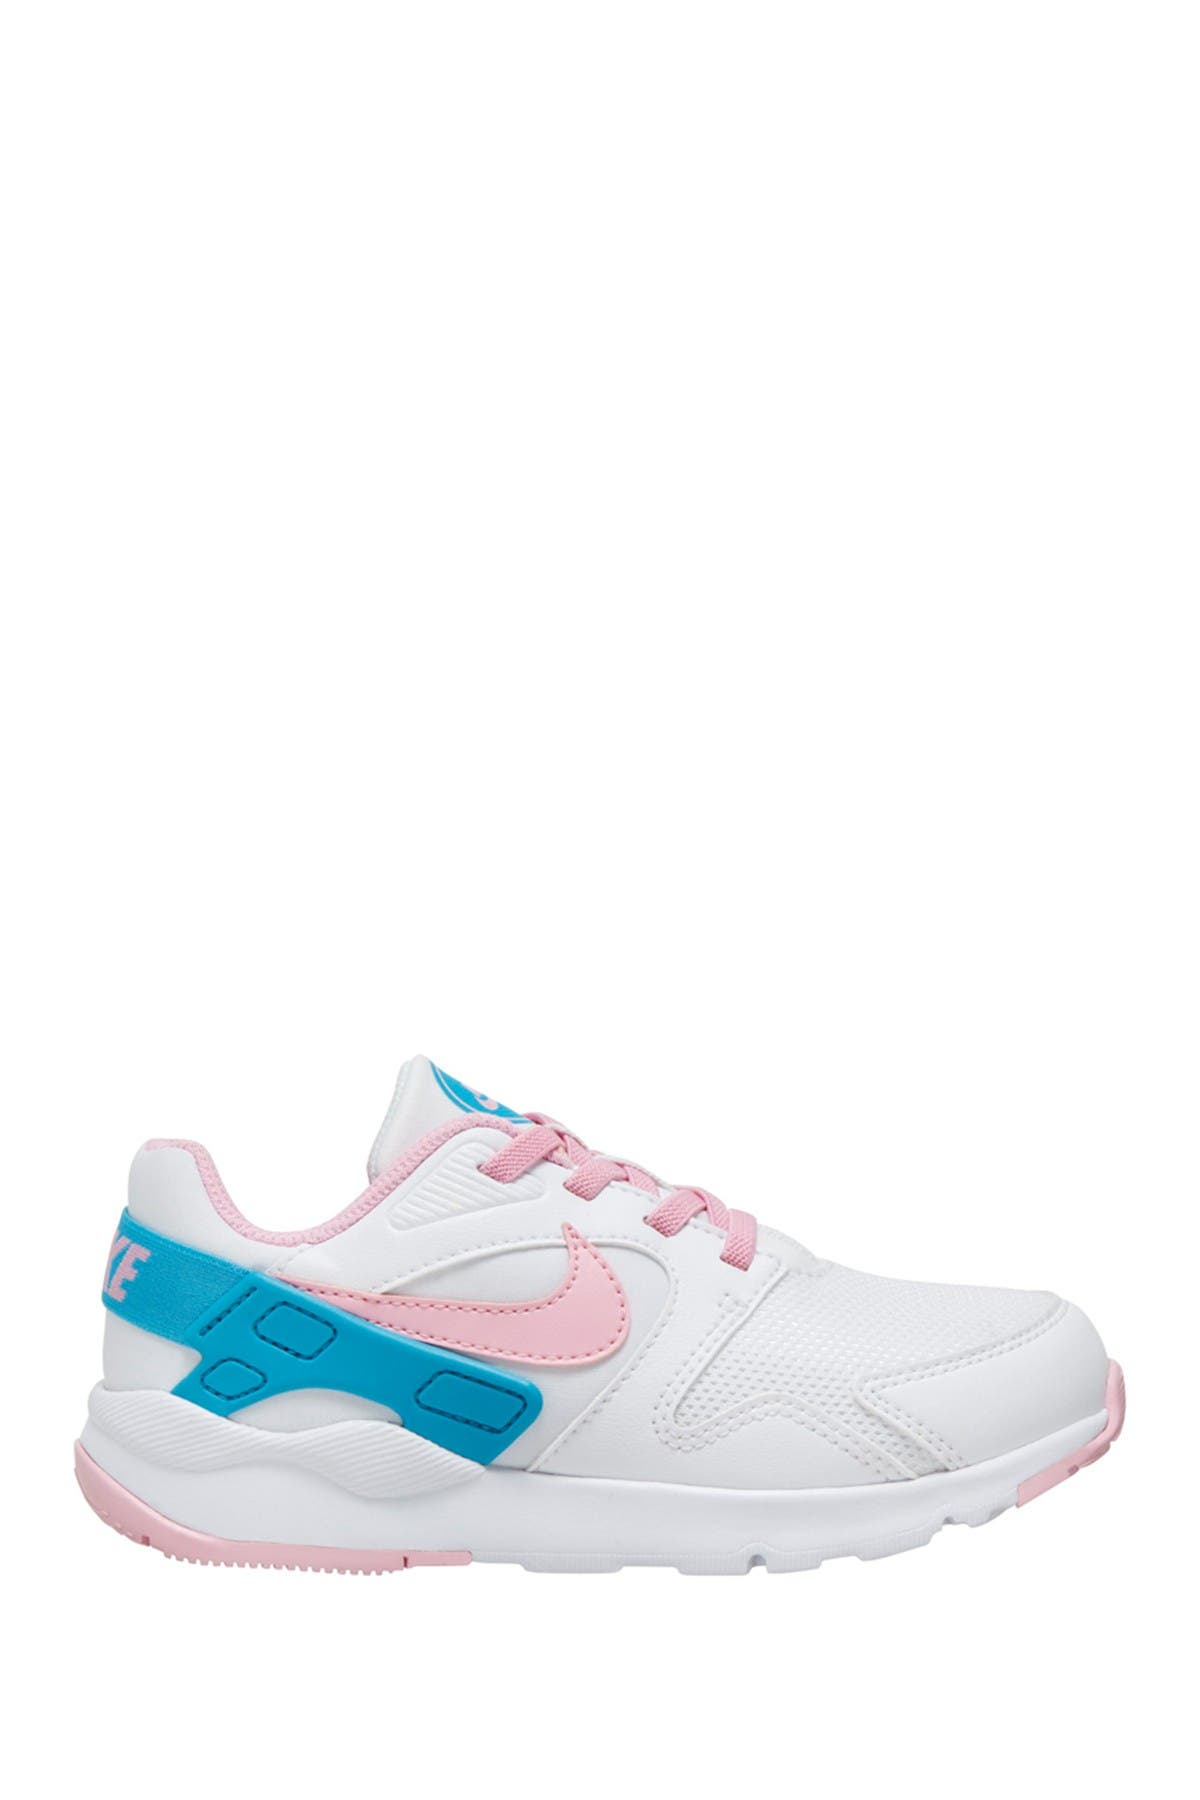 nike youth ld victory